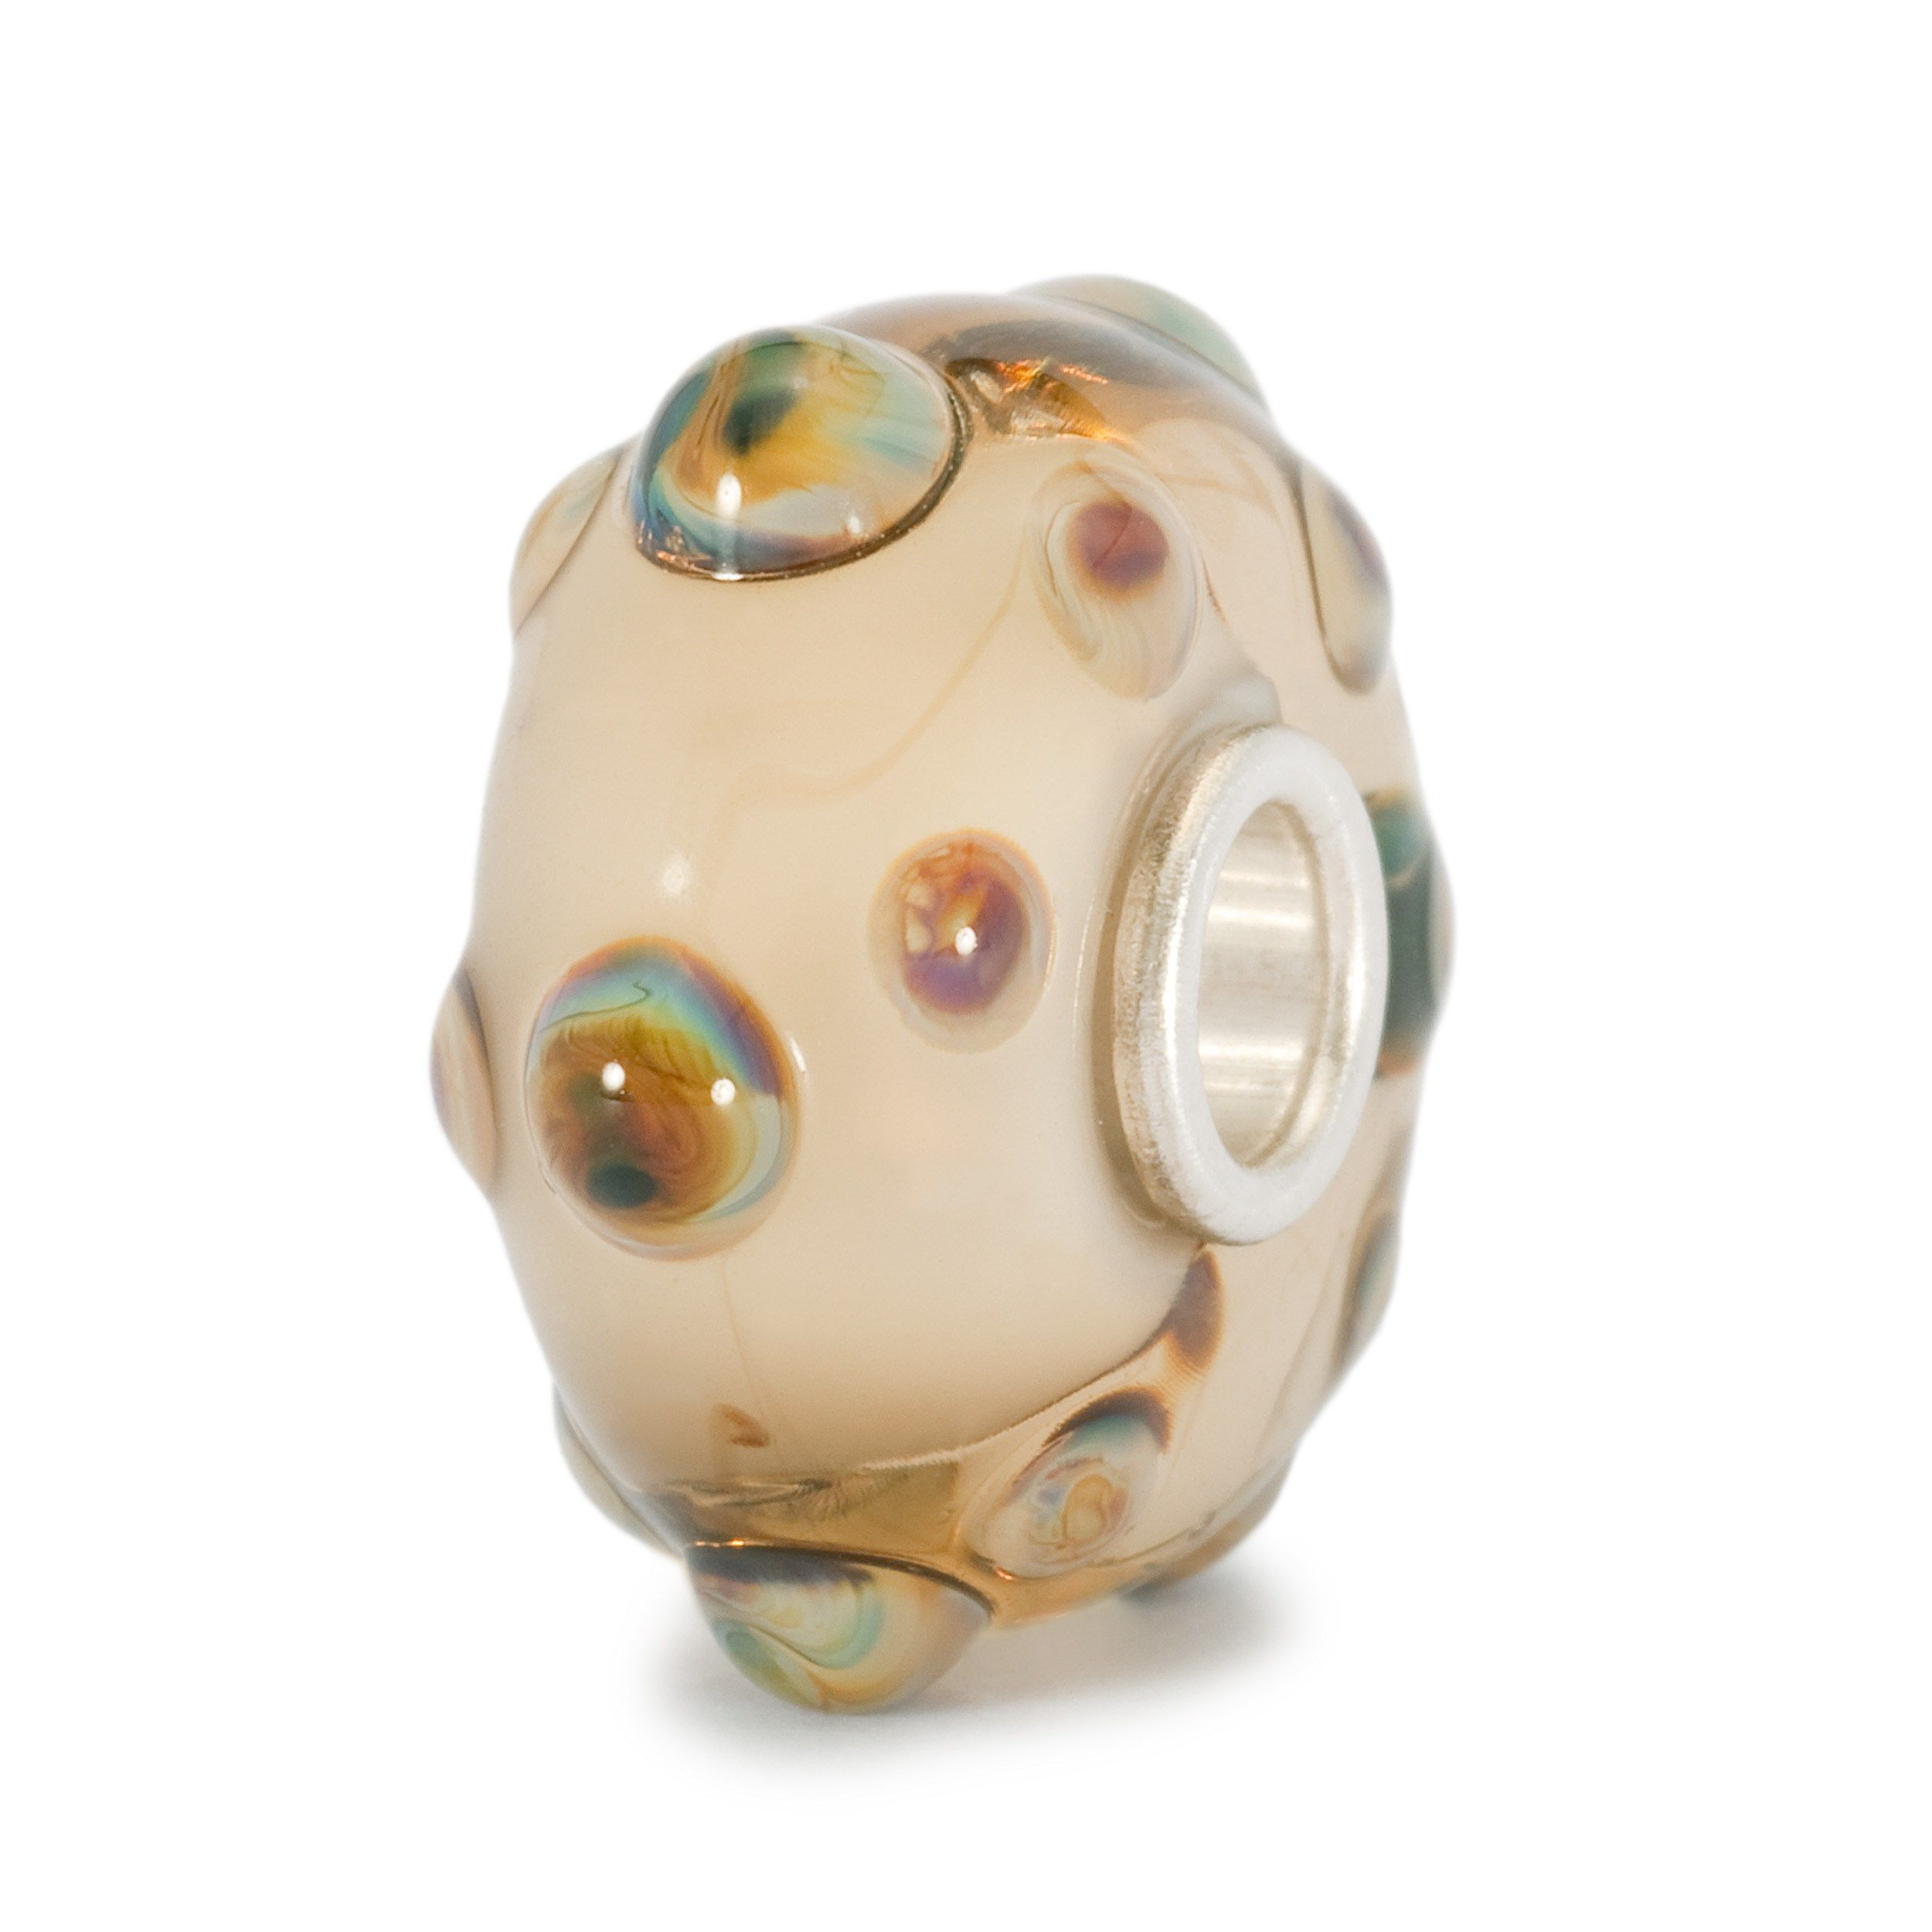 AUTHENTIC TROLLBEADS 61381 Florence